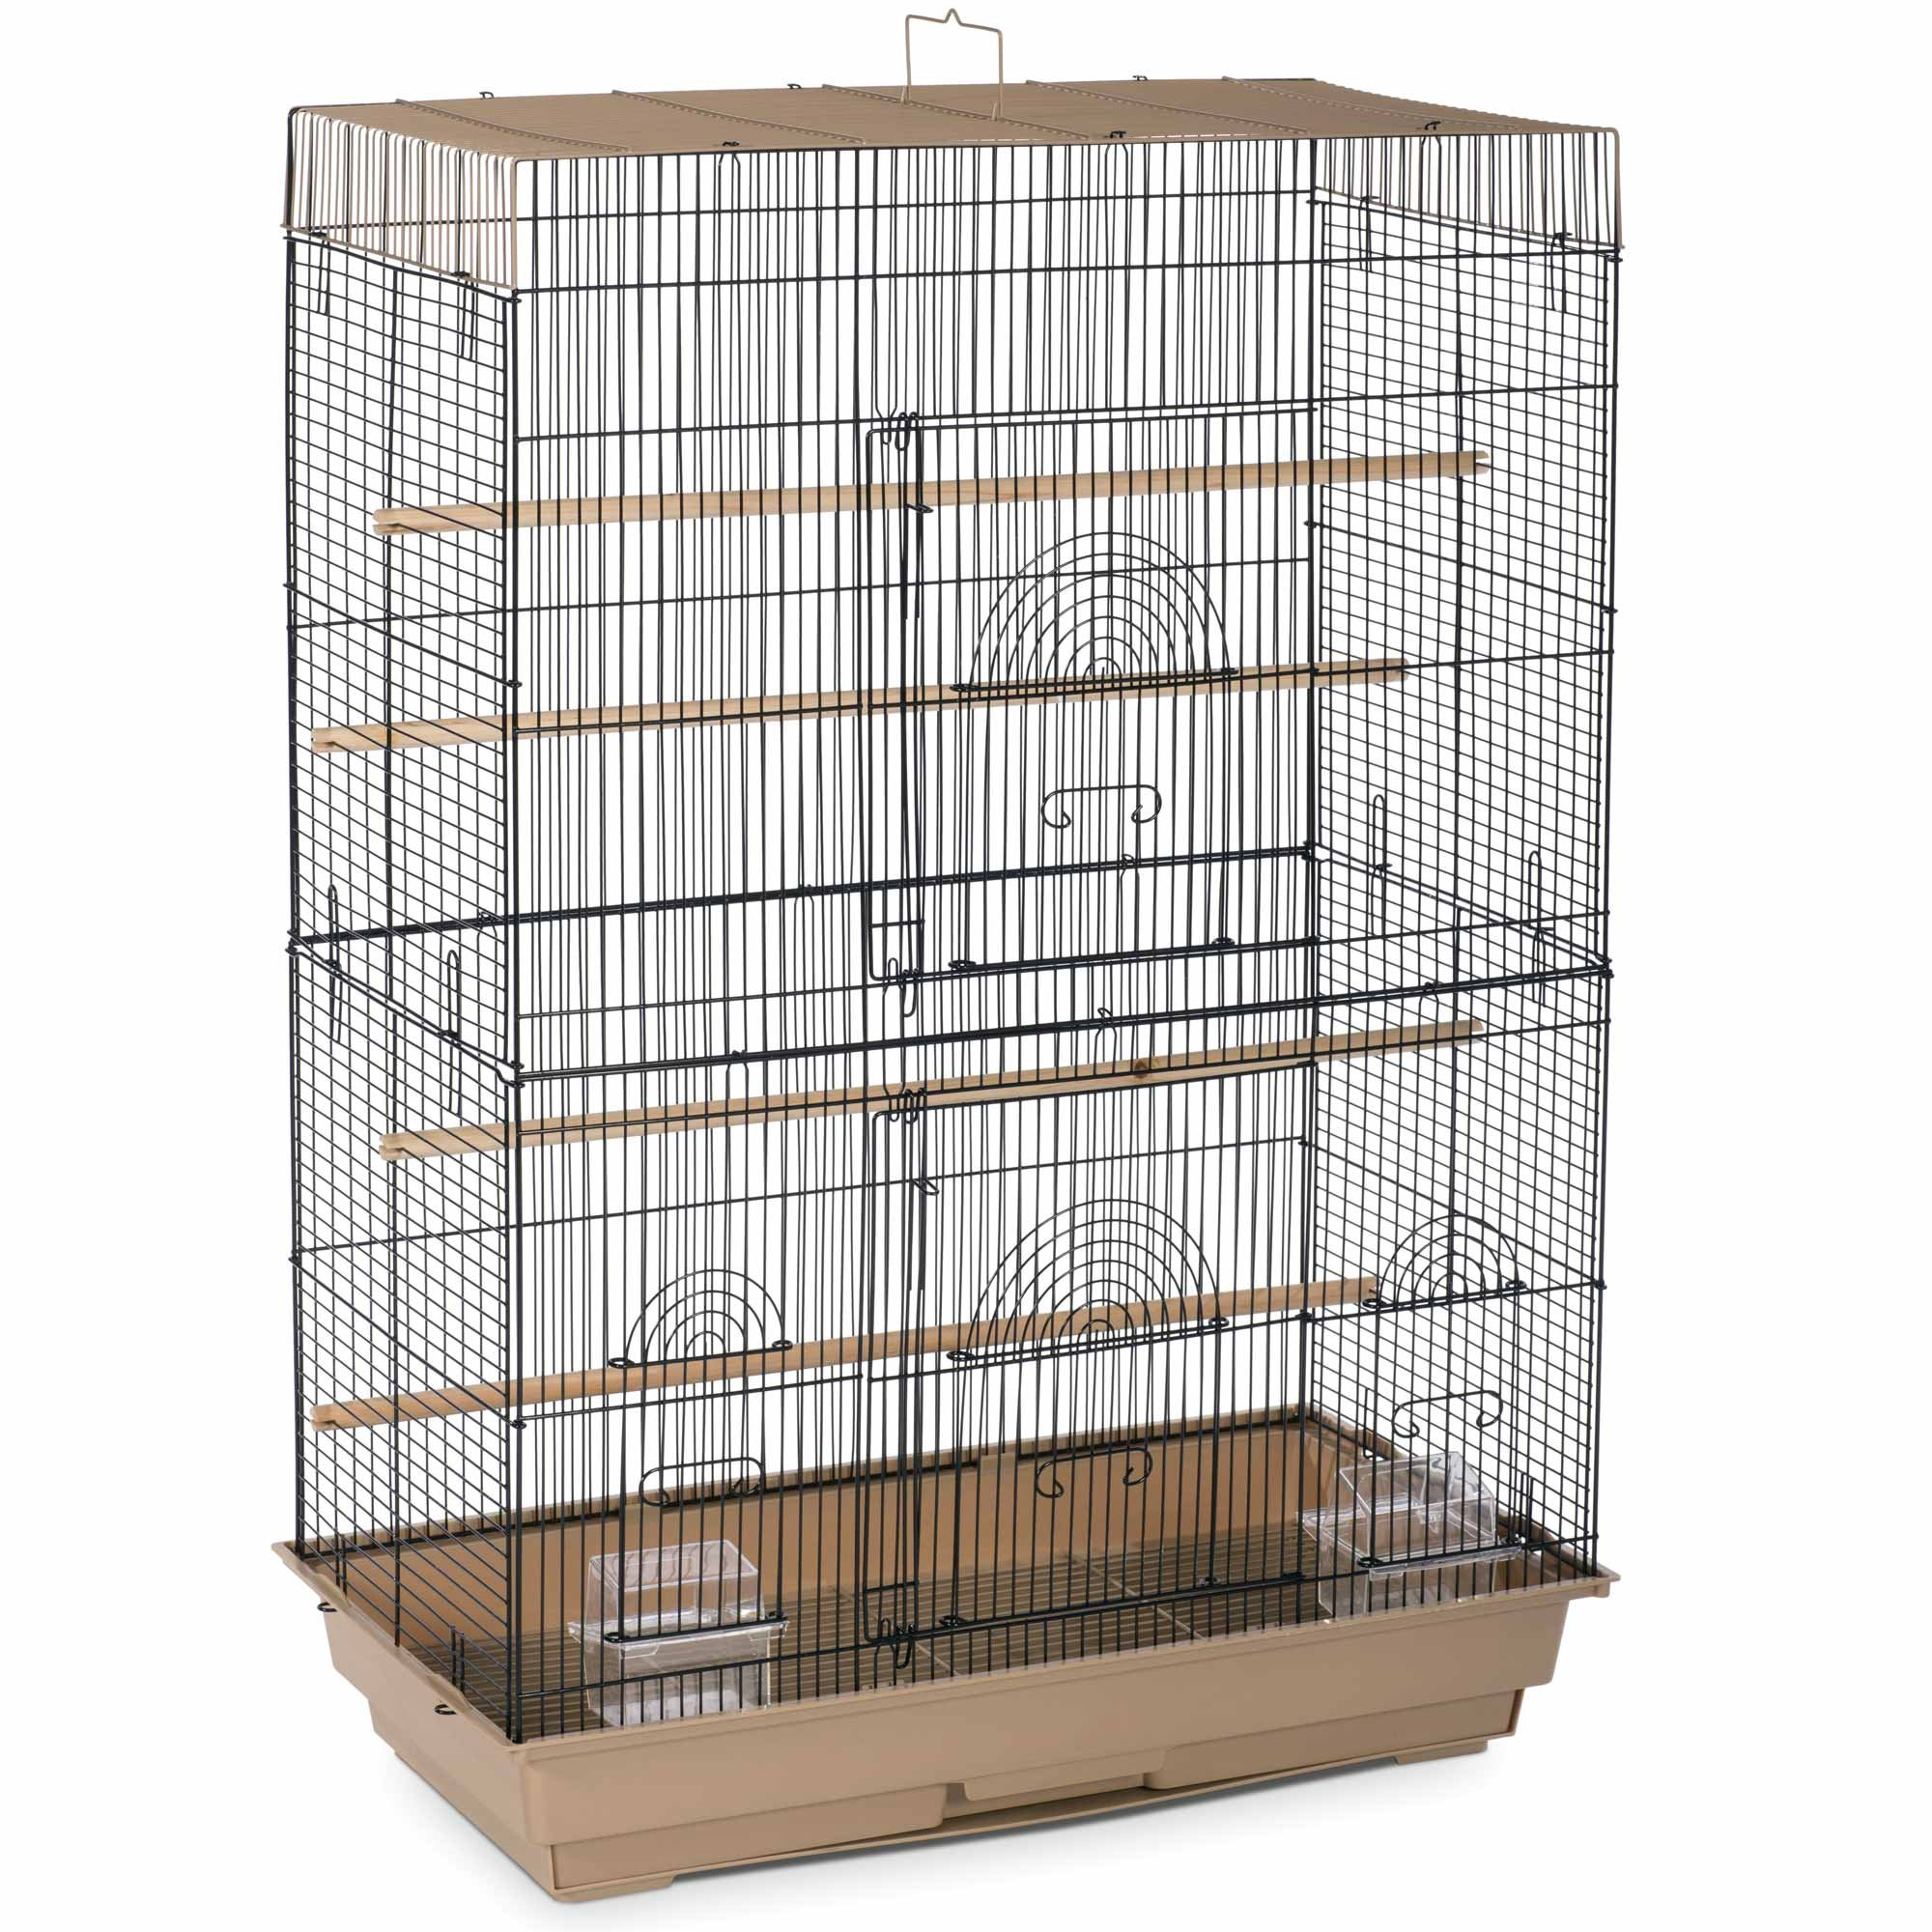 Prevue Pet Products SP42614-4 Flight Cage, Brown/Black by Prevue Pet Products